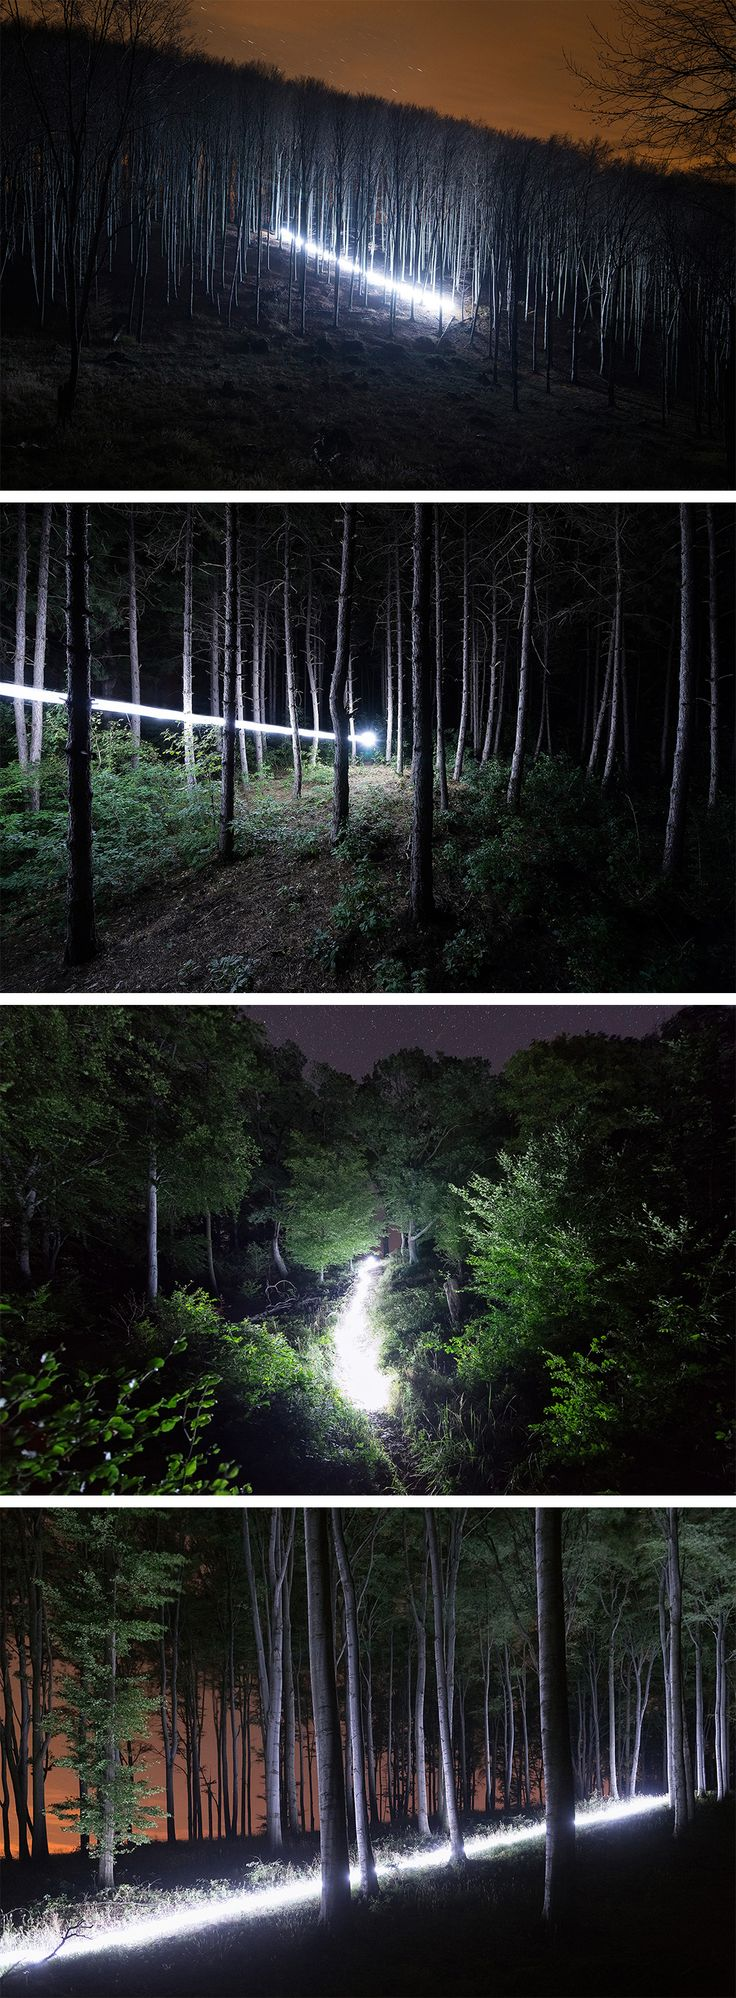 Streaks of Light Illuminate Hungarian Forests During a Full Moon by David Lados